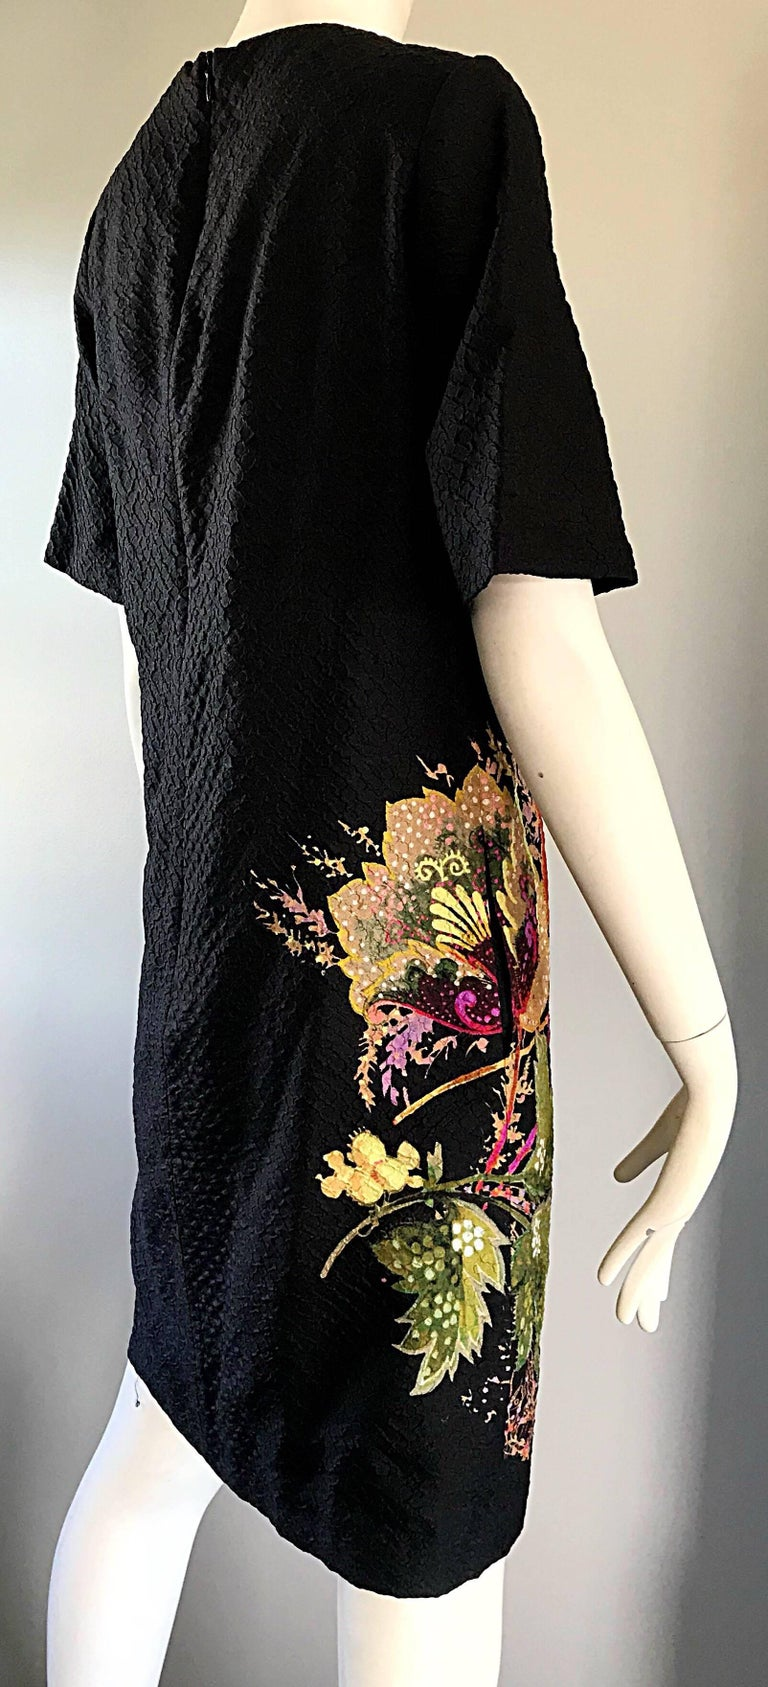 Vintage Etro 1990s Black Silk Size 40 Floral Print Short Sleeve 90s Shift Dress In Excellent Condition For Sale In Chicago, IL